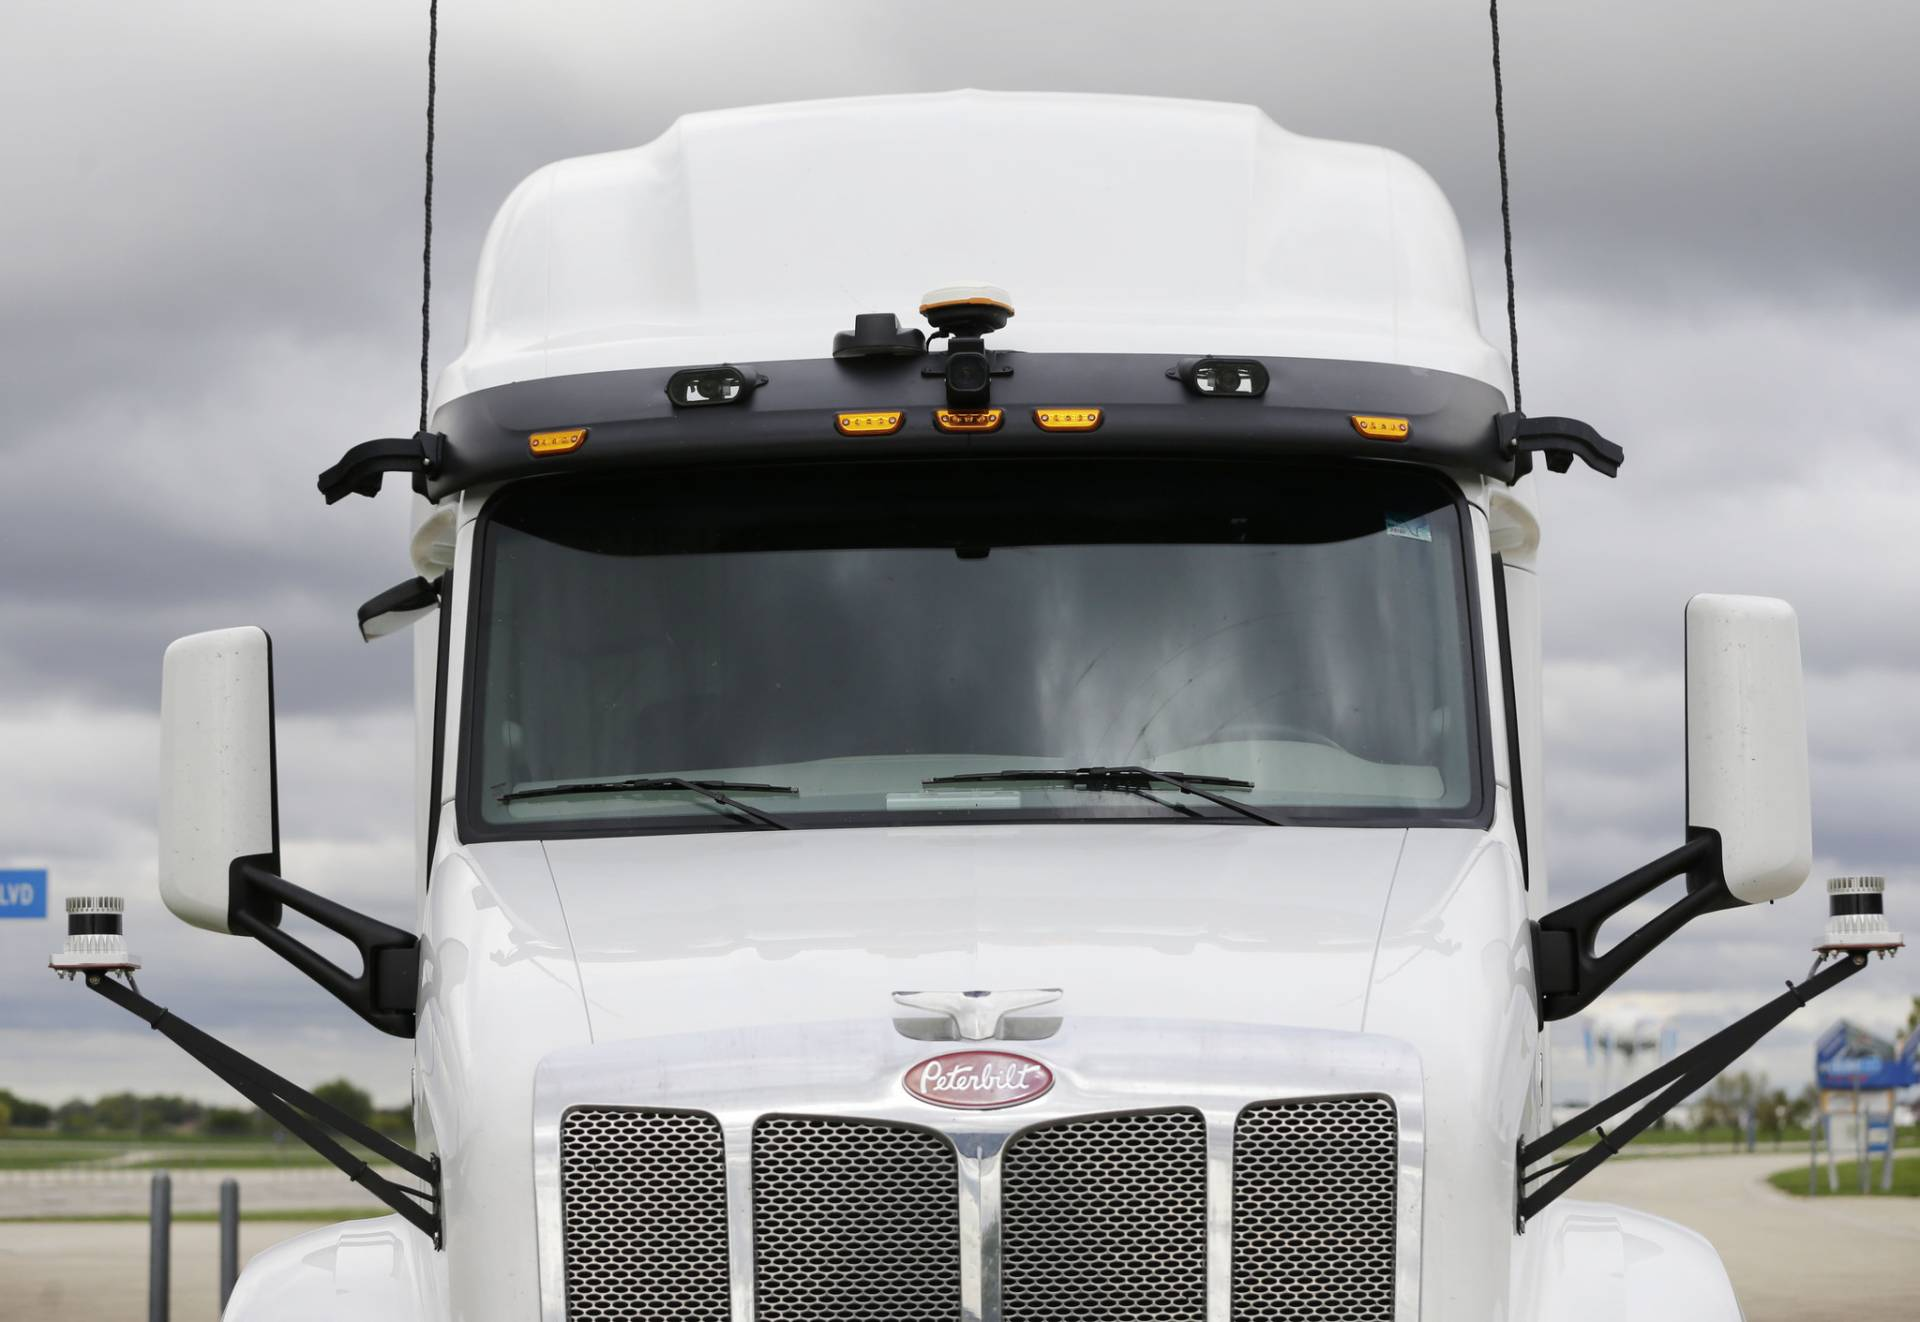 The Autobon wind visor is equipped with cameras, sensors and an acceleration meter. Autobon's system uses these instruments to autonomously drive an 18-wheel semitrailer truck, though some tasks it leaves to a human in the cab.